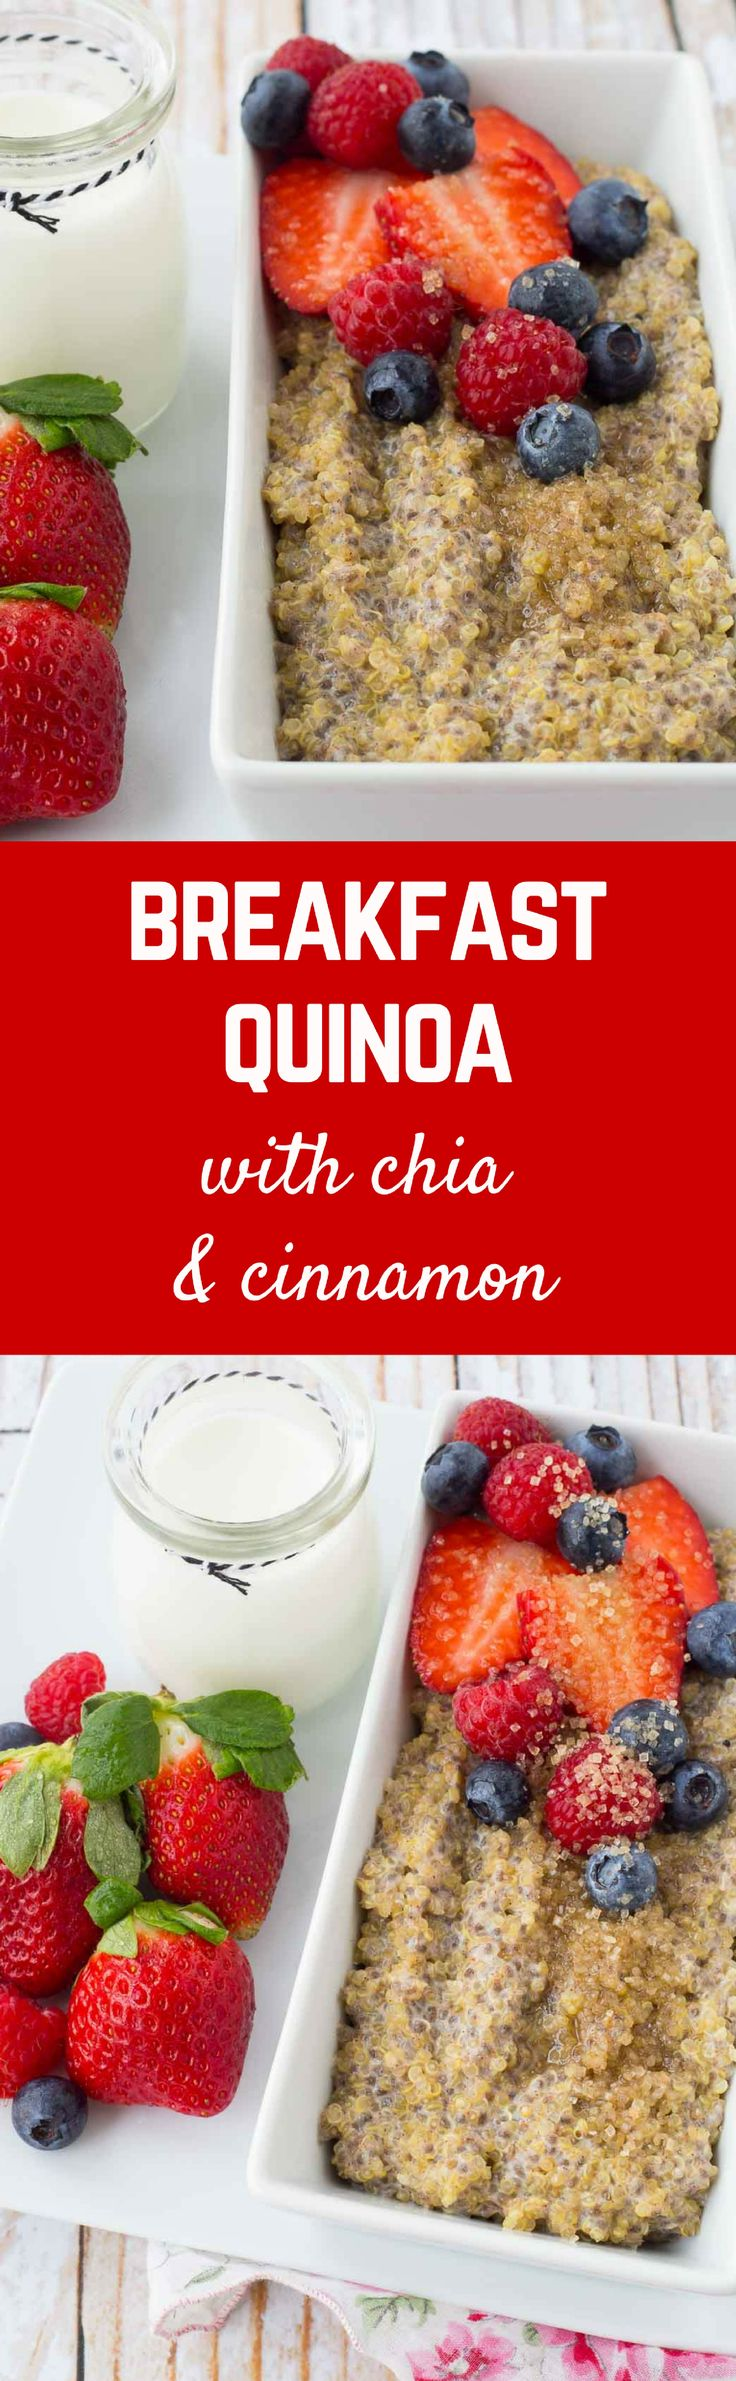 Looking for a filling and nutritious breakfast but slightly bored with oatmeal? You'll love this protein-packed breakfast quinoa! Have fun with toppings! Get the healthy breakfast recipe on RachelCooks.com! #sponsored @bobsredmill